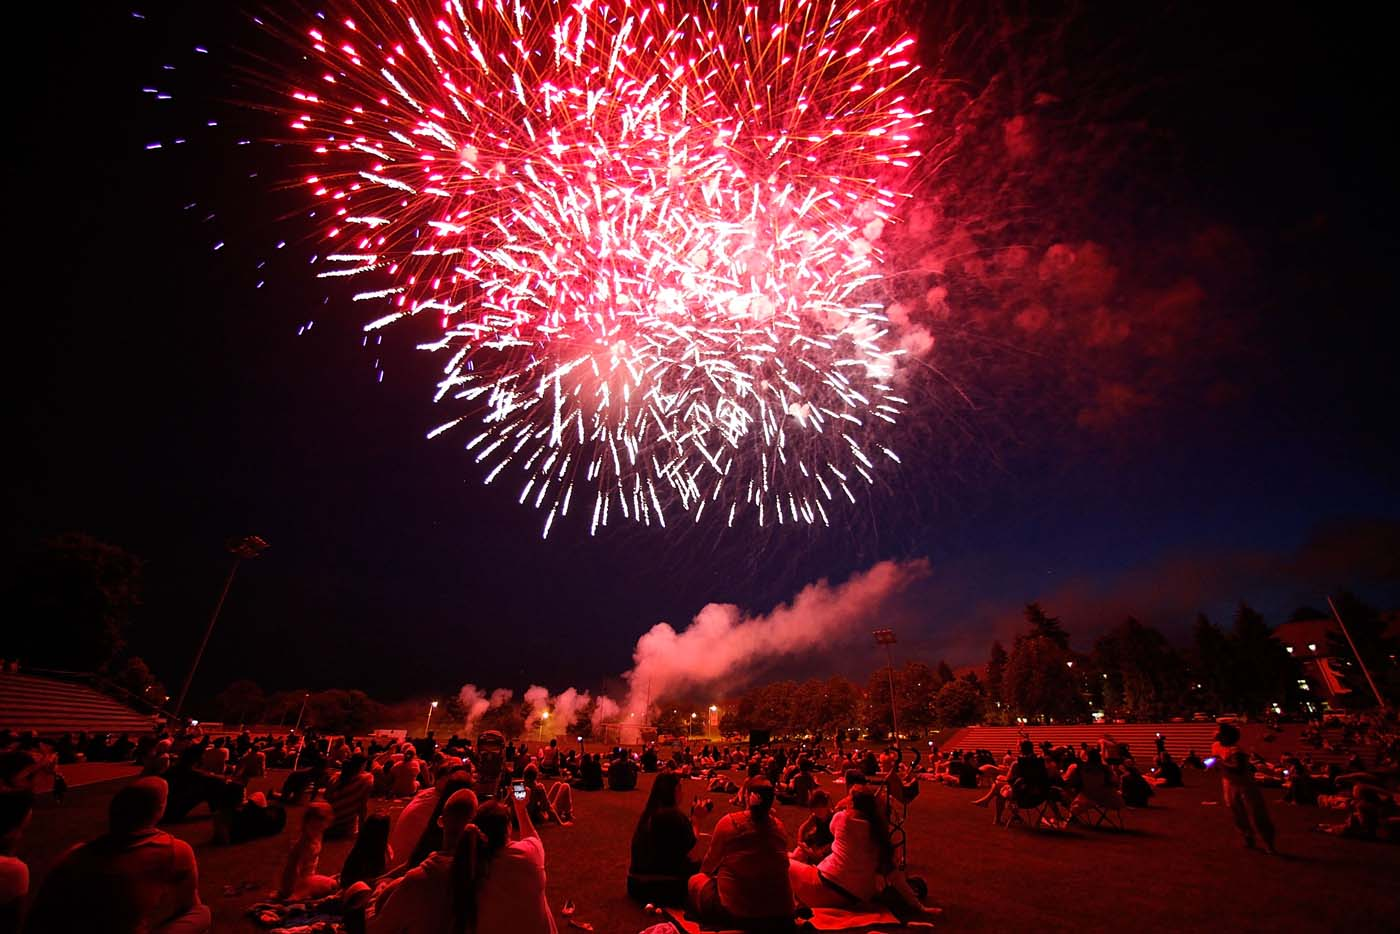 BAUMHOLDER, GERMANY - JULY 04: U.S. soldiers and their families watch fireworks during the 4th of July festivities at the Baumholder U.S. military base. (Ralph Orlowski/Getty Images)